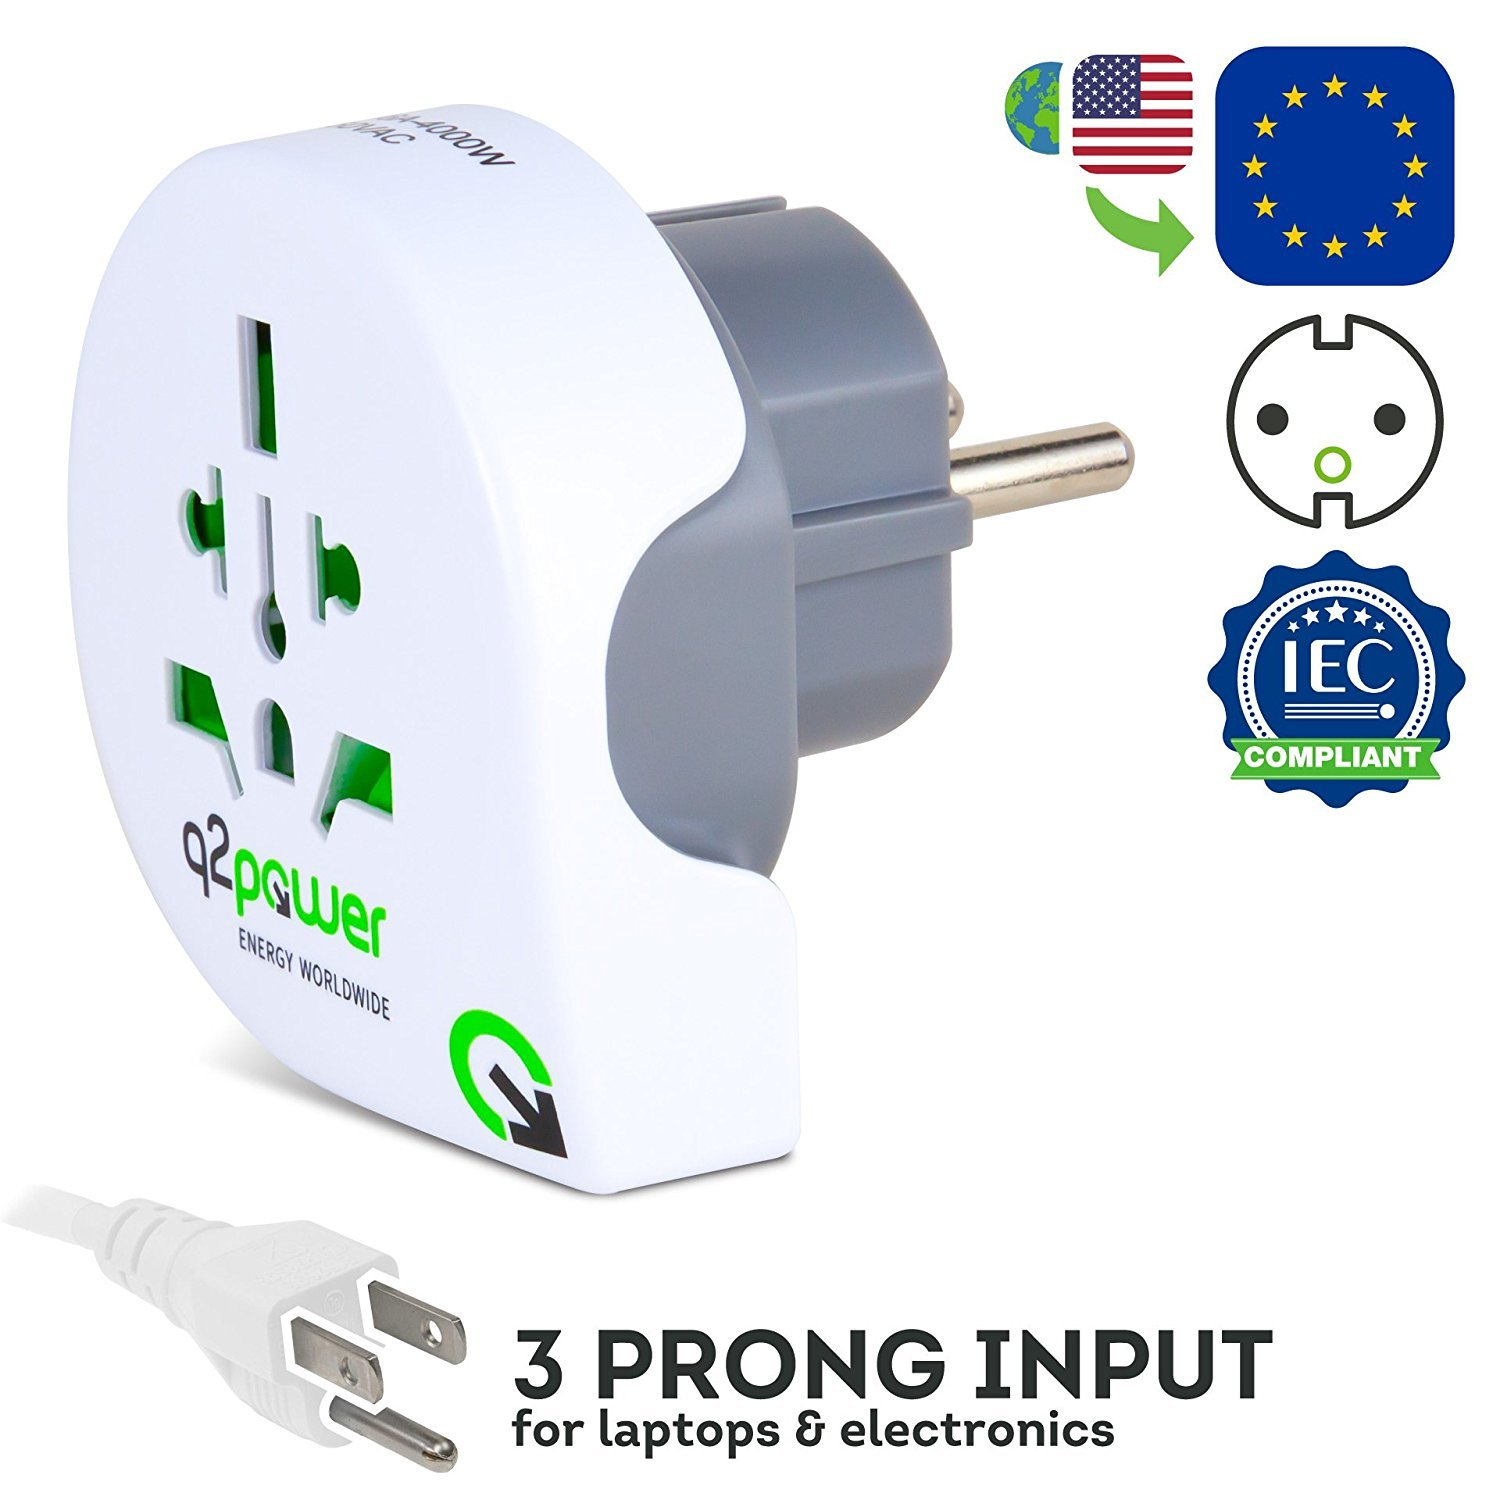 World to Europe Travel Adapter by Q2Power | For Type F Schuko Outlets | Grounded & Safe | Works with Laptops, Computers, Smartphone Chargers, Portable Devices | Perfect for International Trips